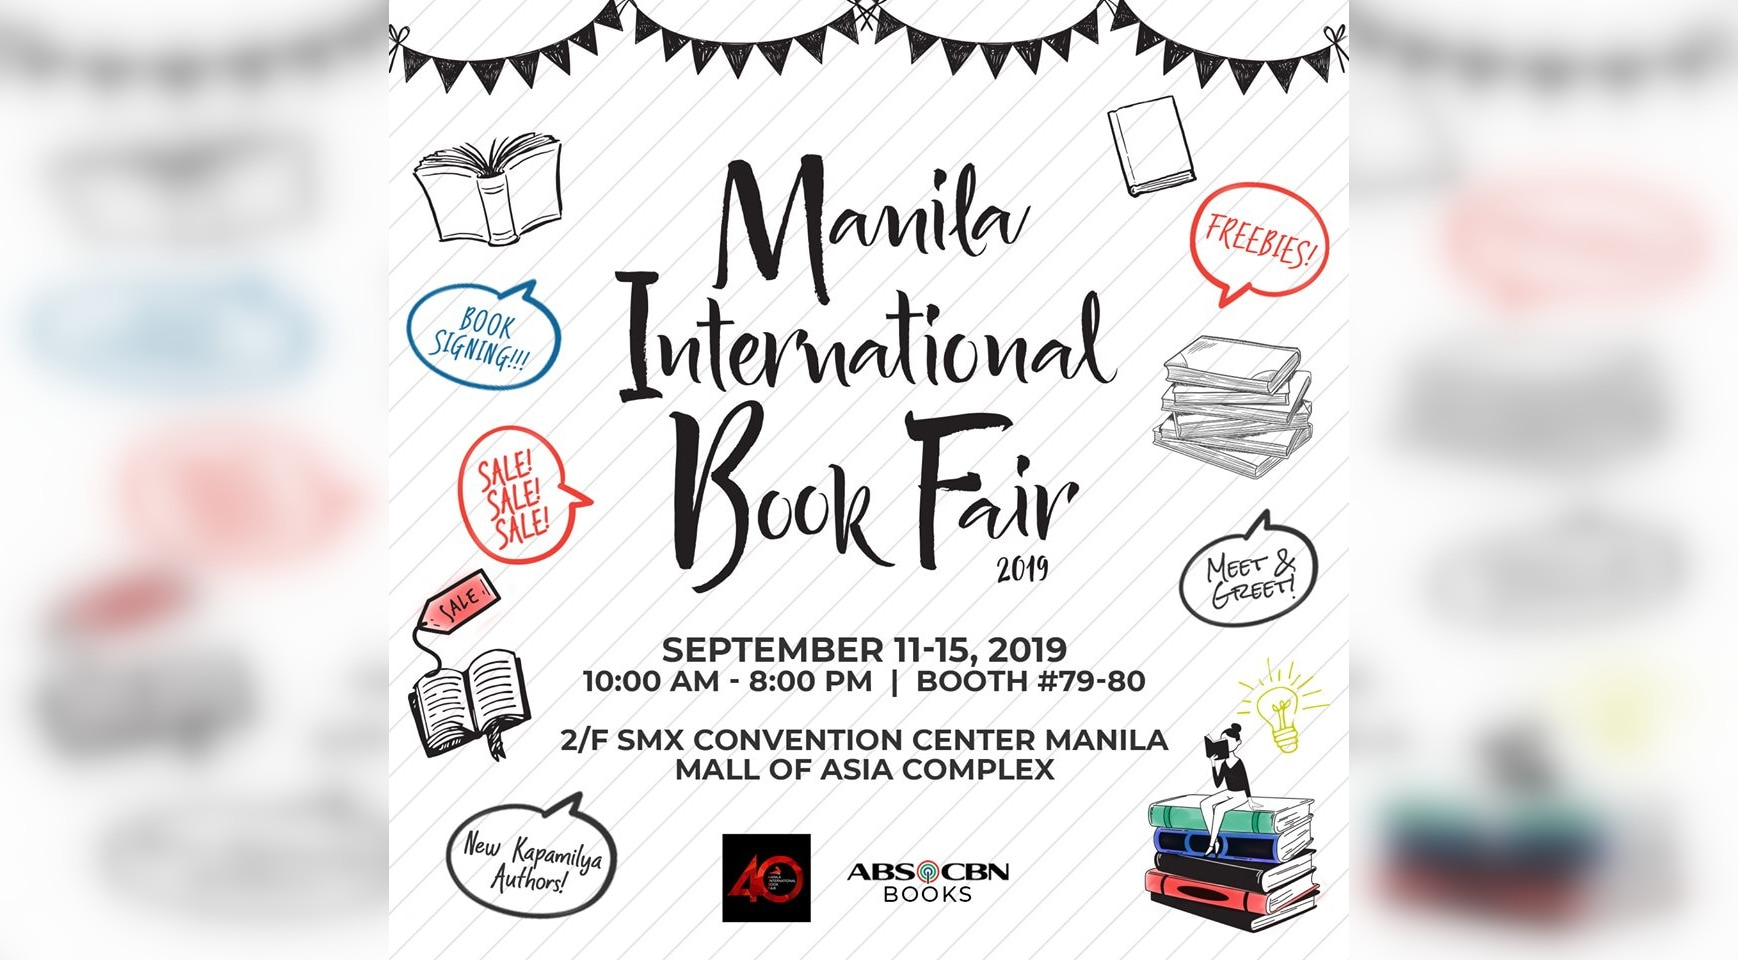 10 Kapamilya books to be launched at MIBF 2019